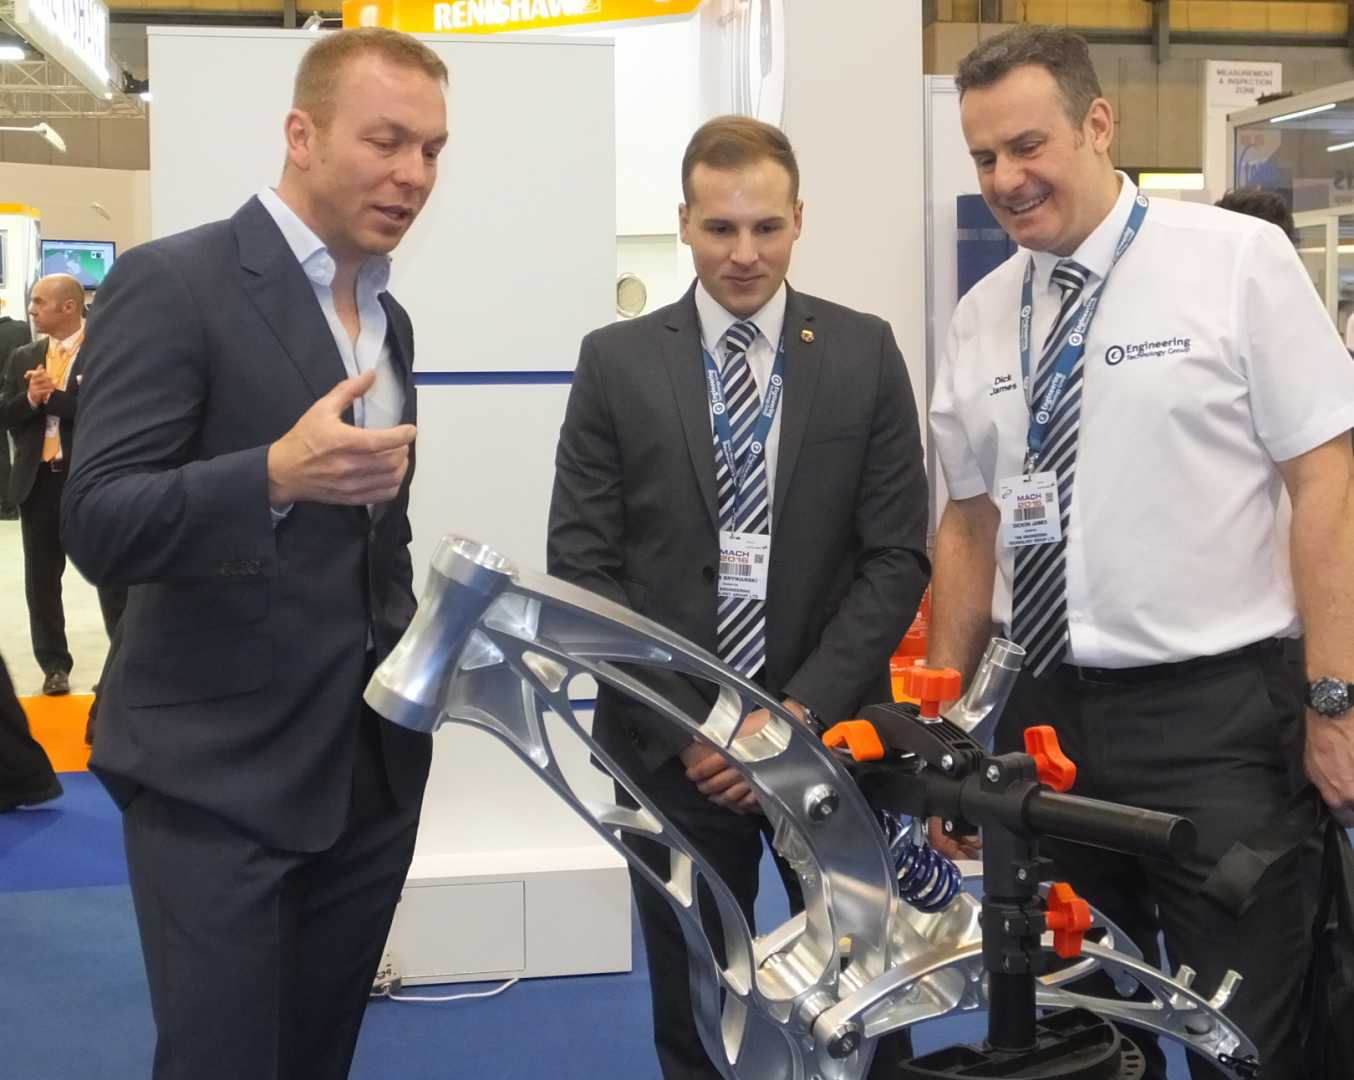 British Olympian Sir Chris Hoy - who officially opened MACH 2016 - dropped in to visit the ETG stand.